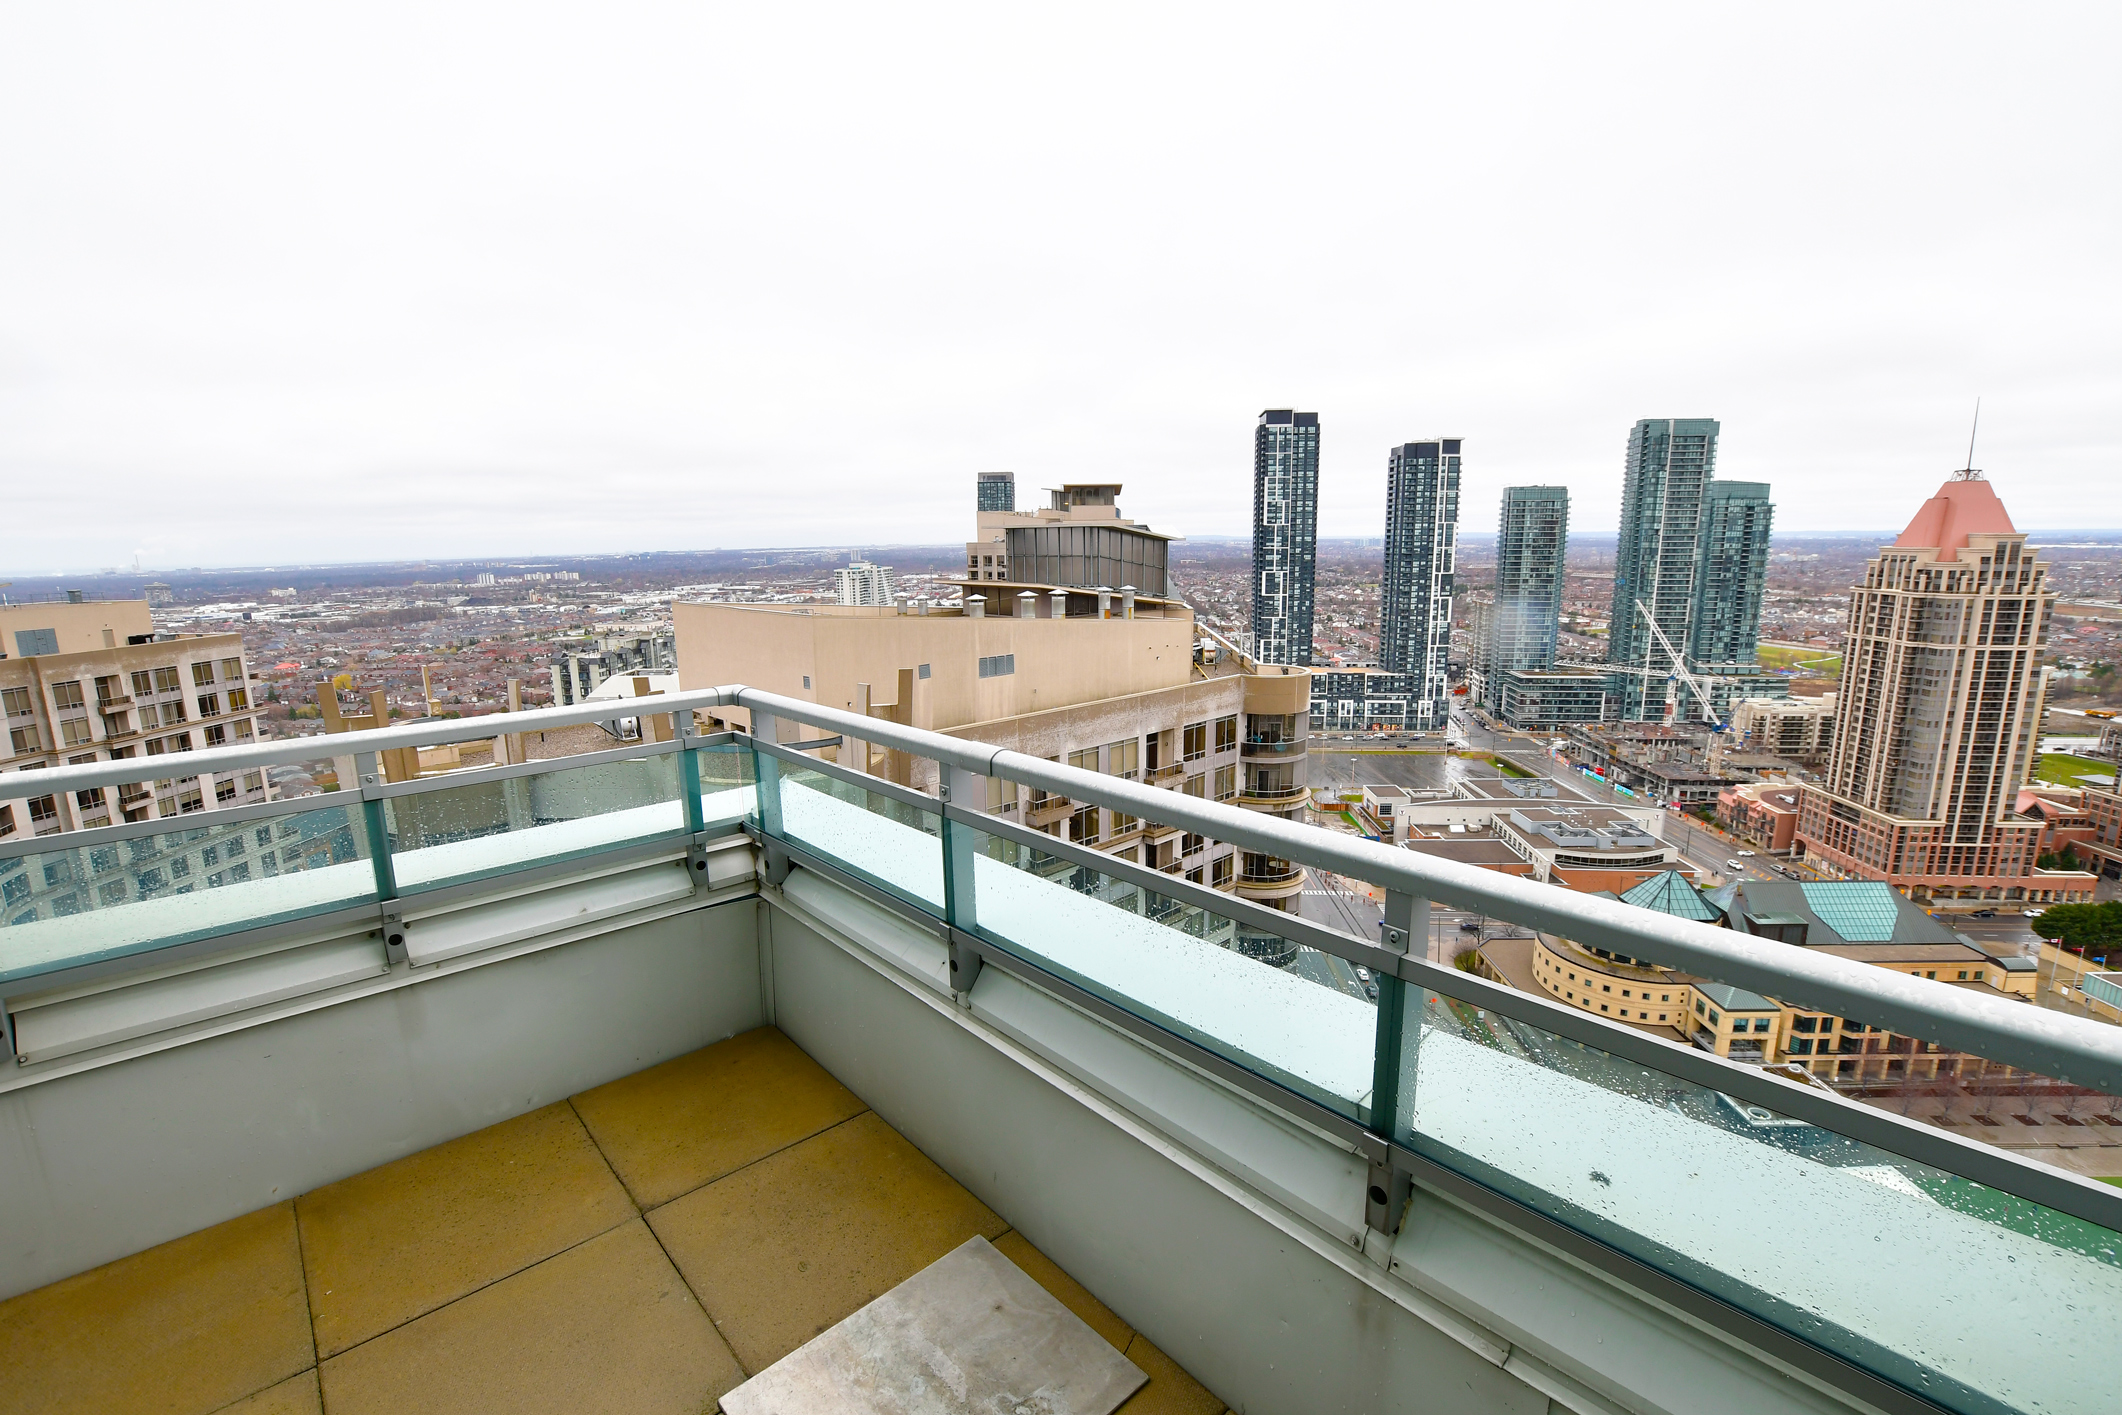 Penthouse 7 at 3939 Duke of York / Citygate One Condo For Sale by New Street Realty